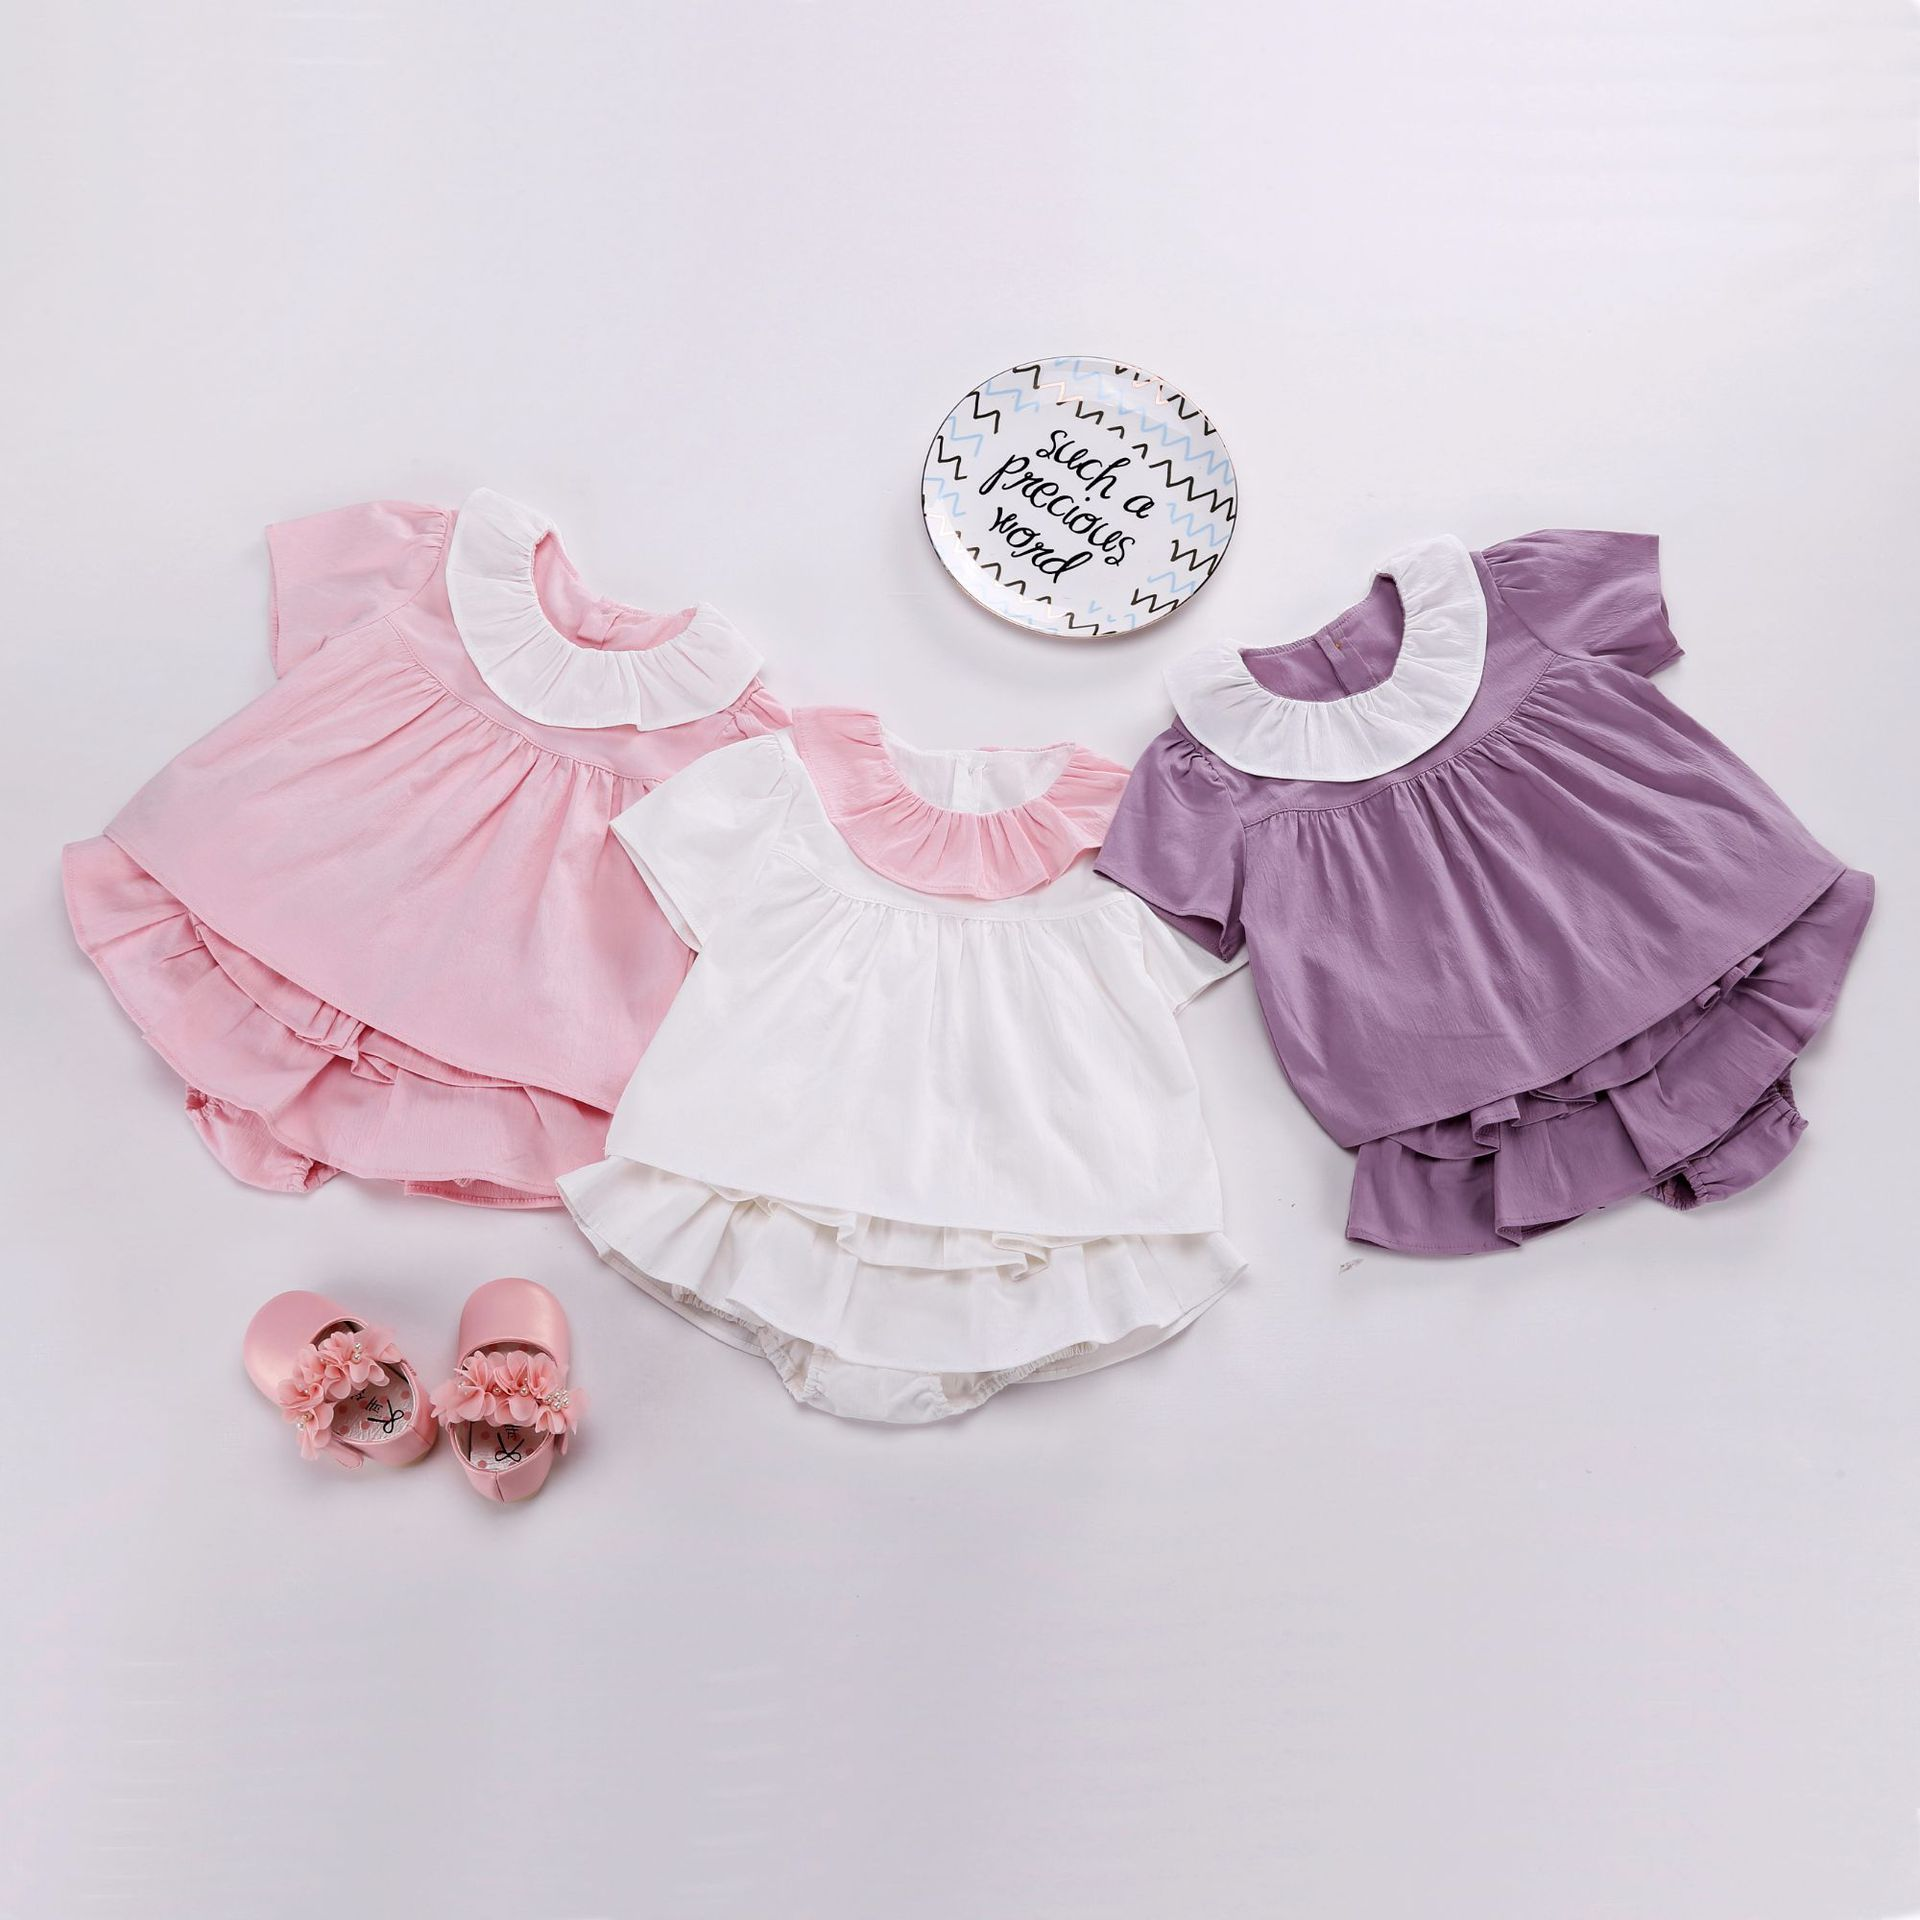 Bow Shorts On Both Sides 2Pcs Princess Outfit Clothes Newborn Baby Grils Pink Lace Purfle Floral Tank Top